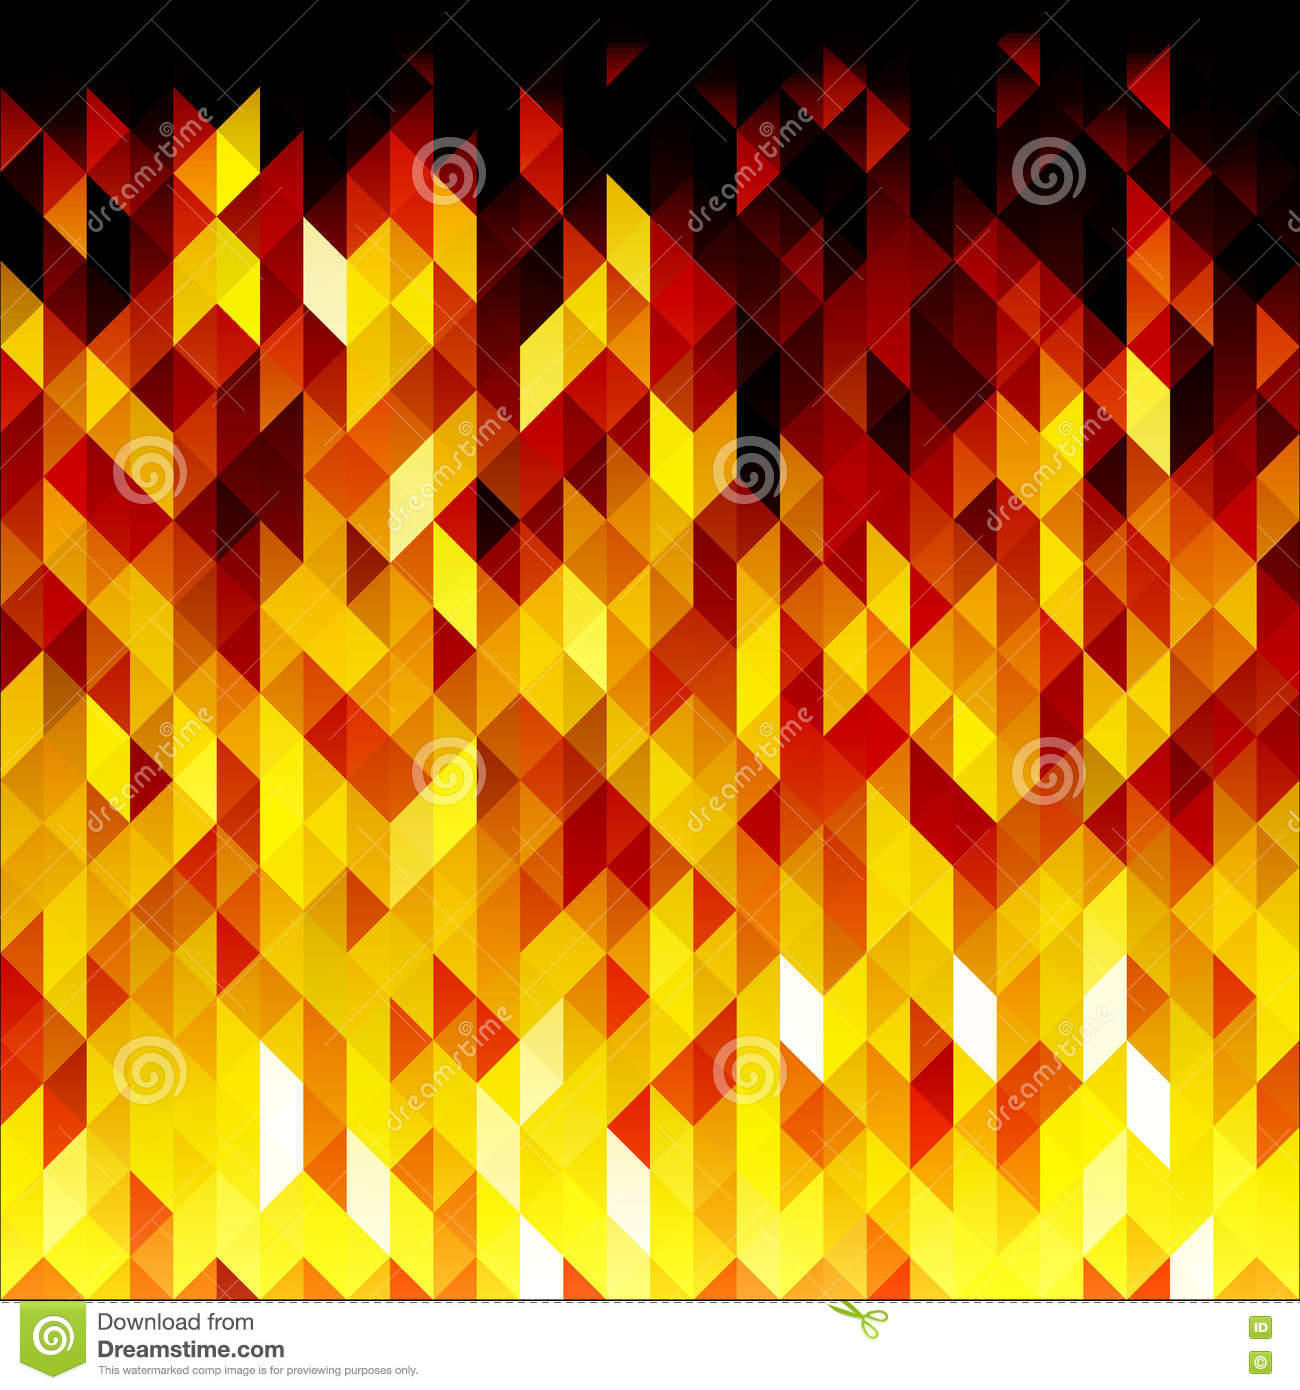 Red And Yellow Decor Abstract Polygonal Background Vector Royalty Free Stock